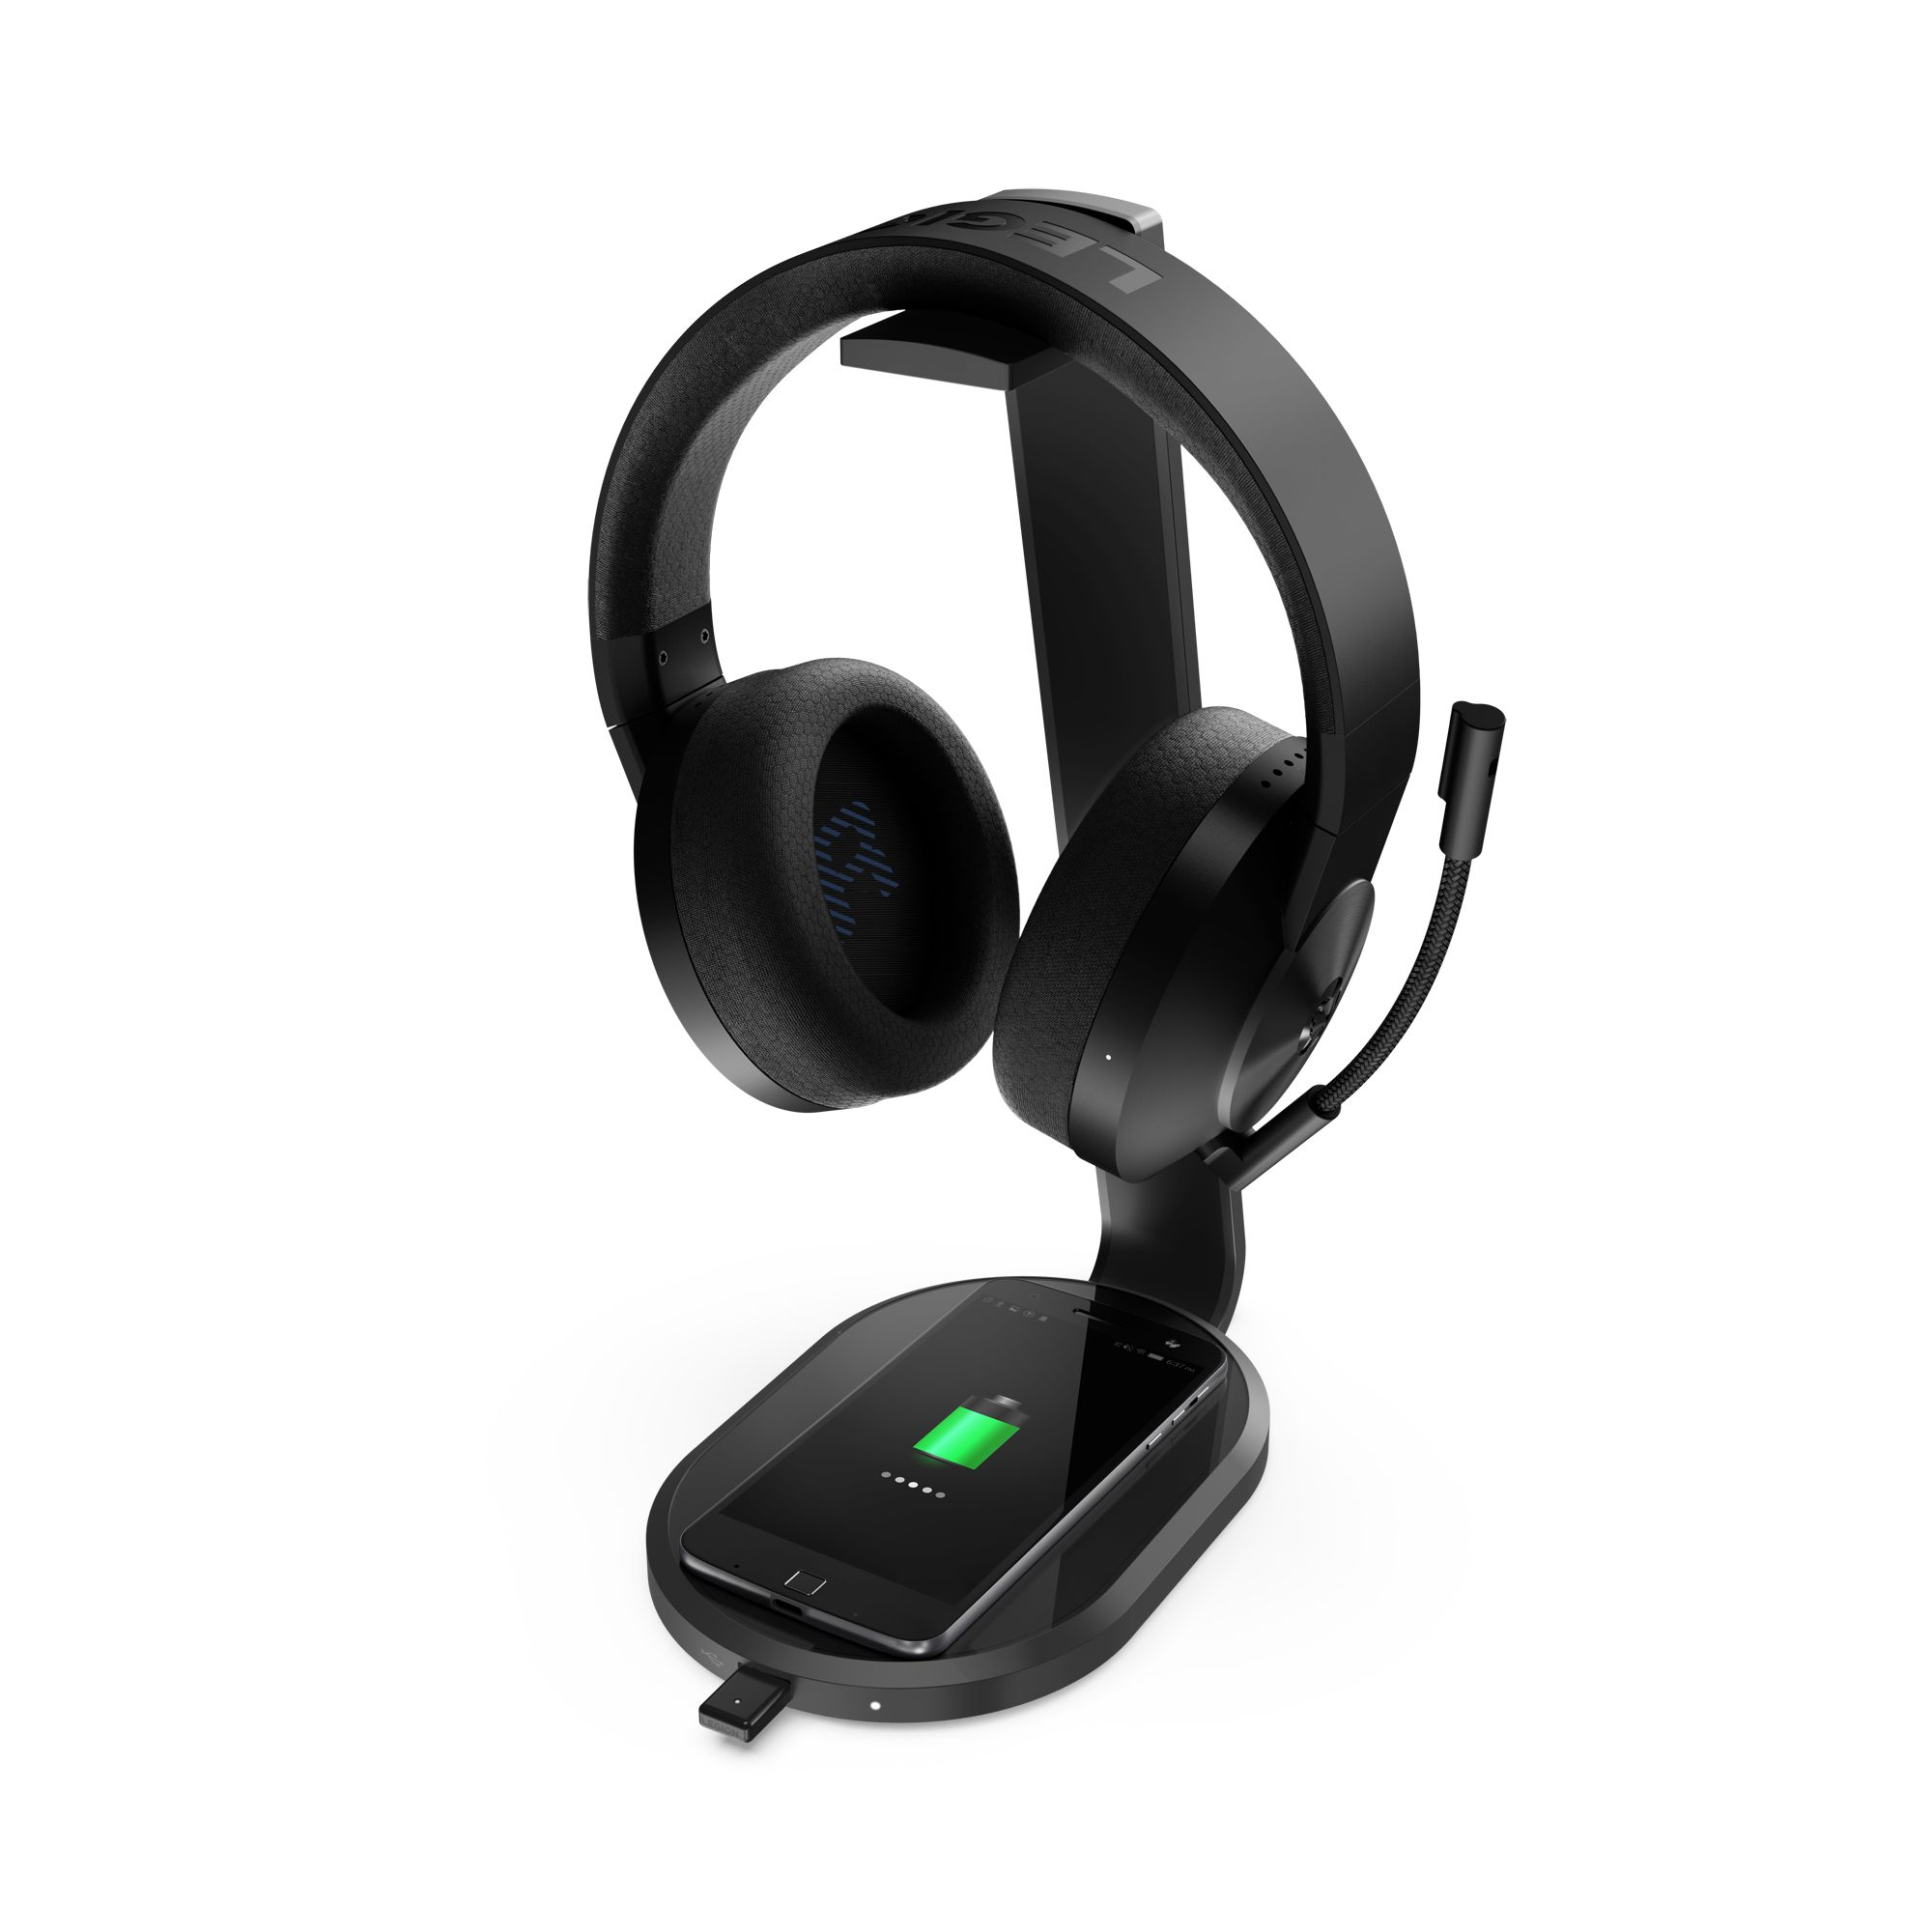 Lenovo_Legion_S600_Gaming_Station_Right_w_Headphones_and_Smartphone_P